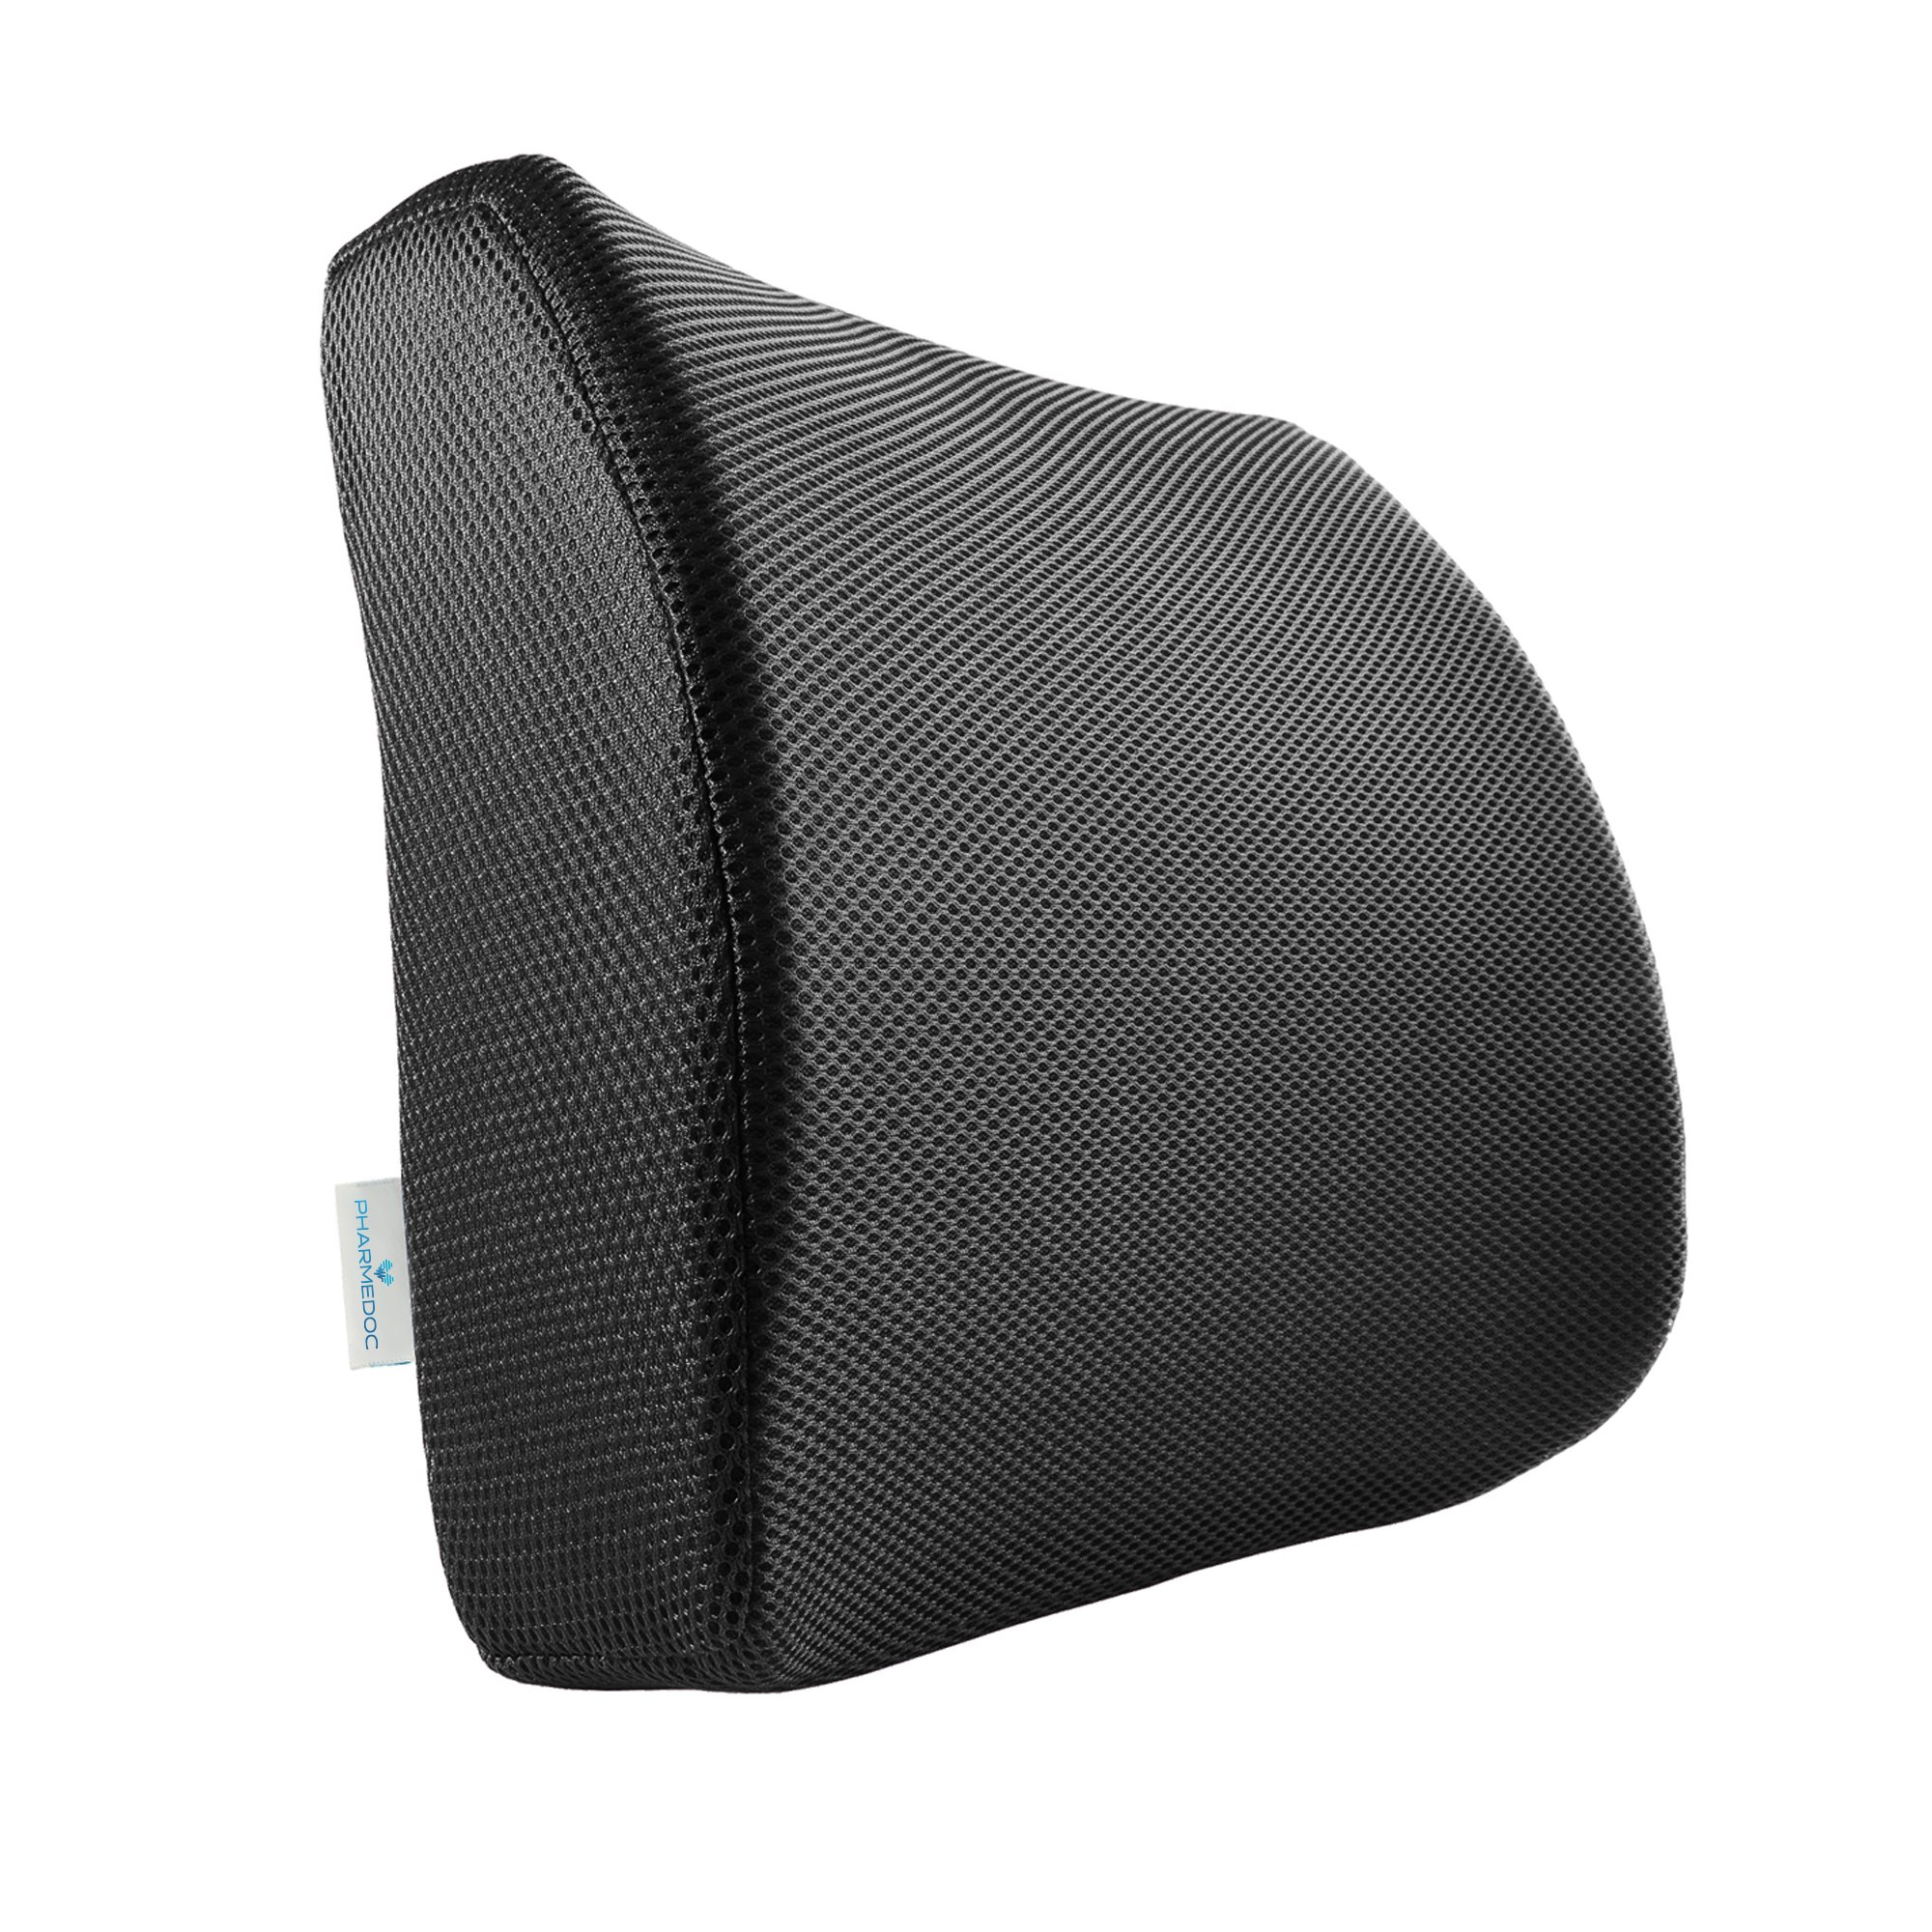 Amazon PharMeDoc Seat Cushion for fice Chair & Car Seat